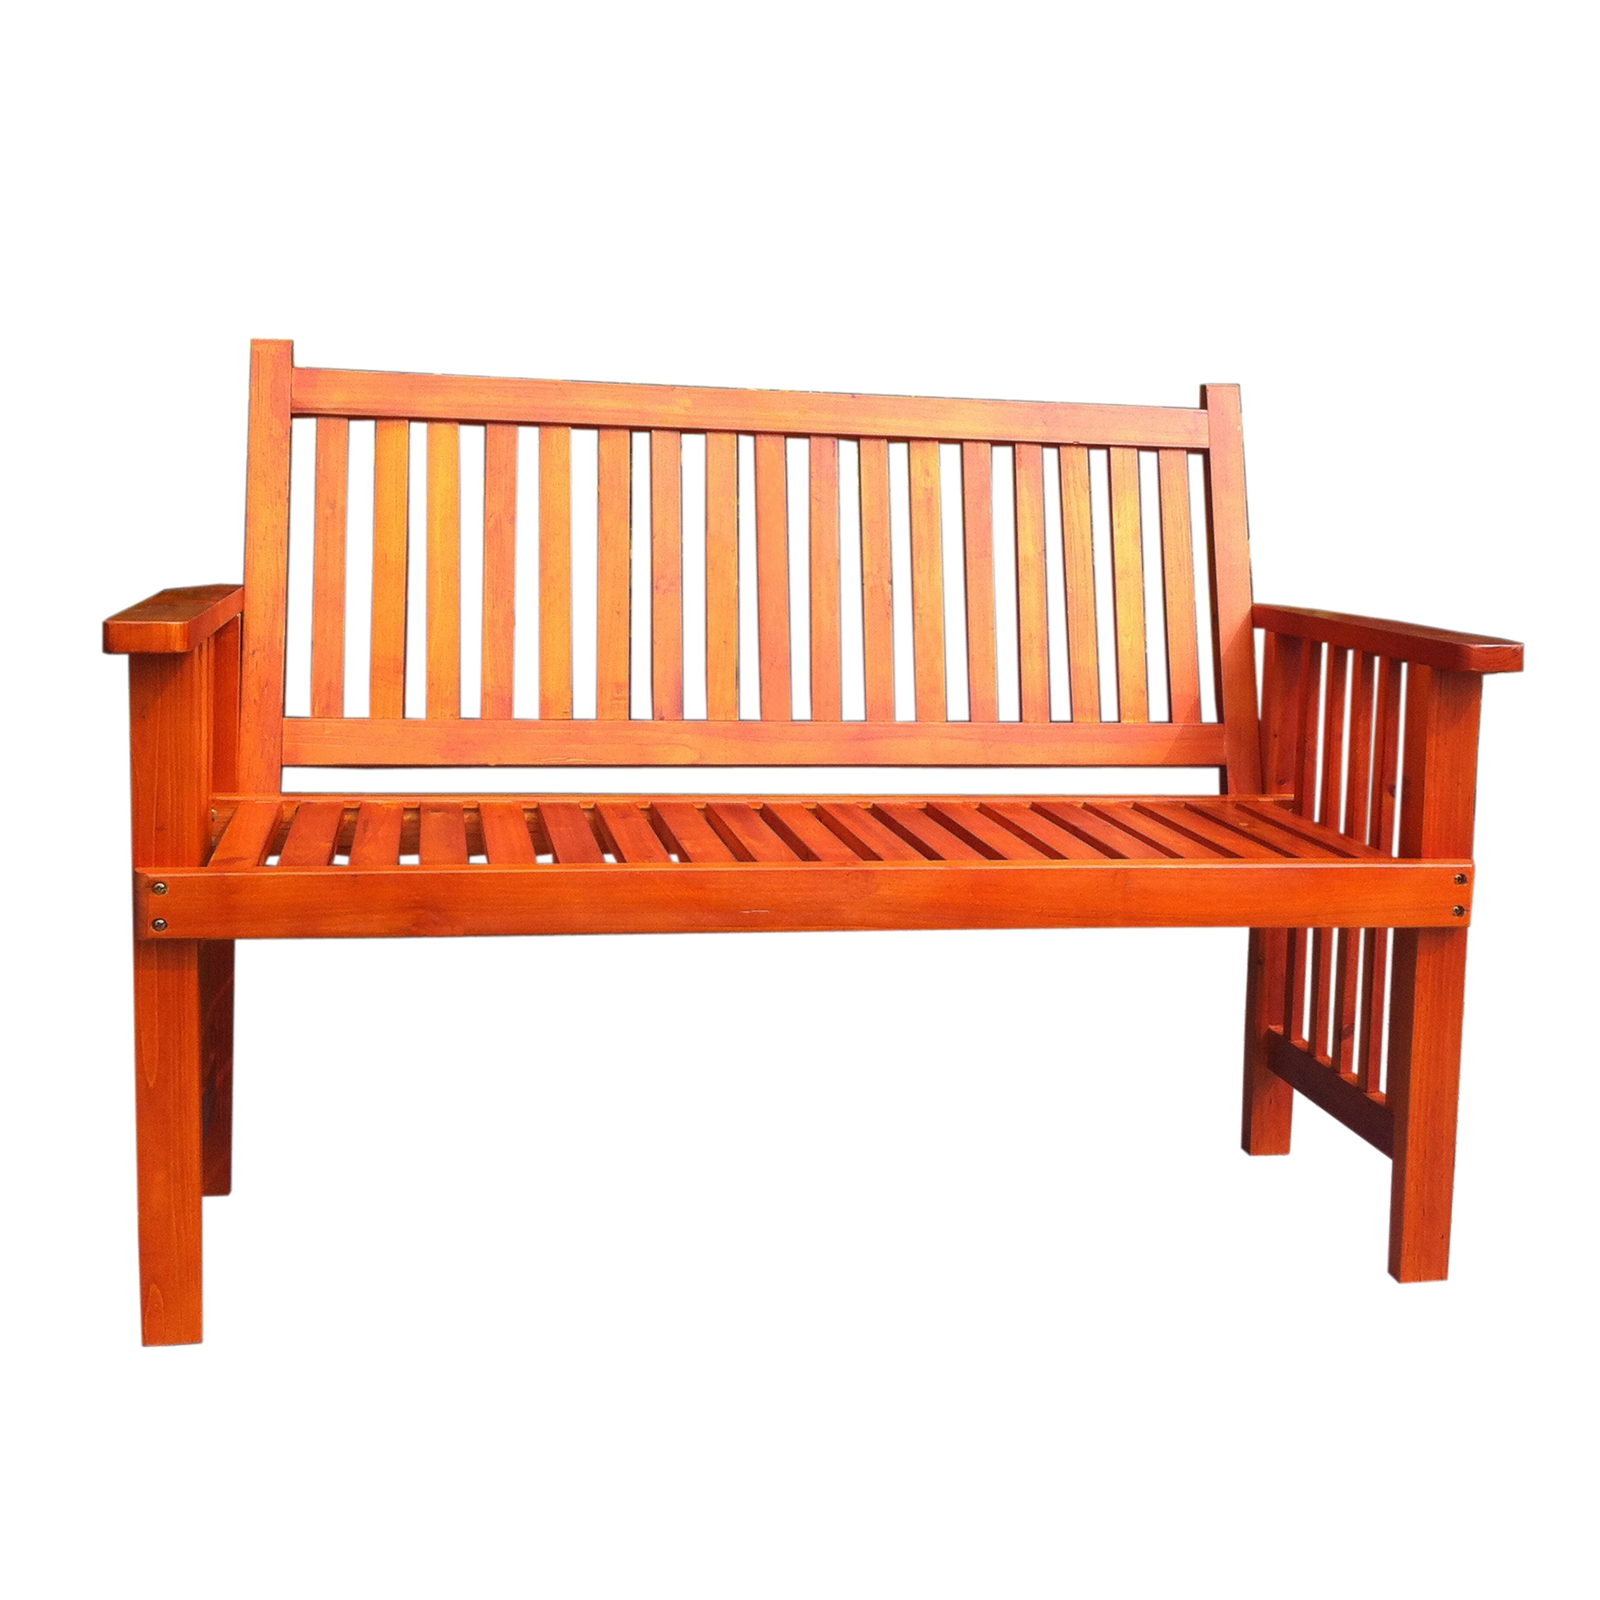 Foxhunter Wooden Garden Bench 2 Seat Seater Hardwood Outdoor Patio Park Fhwb01 Ebay